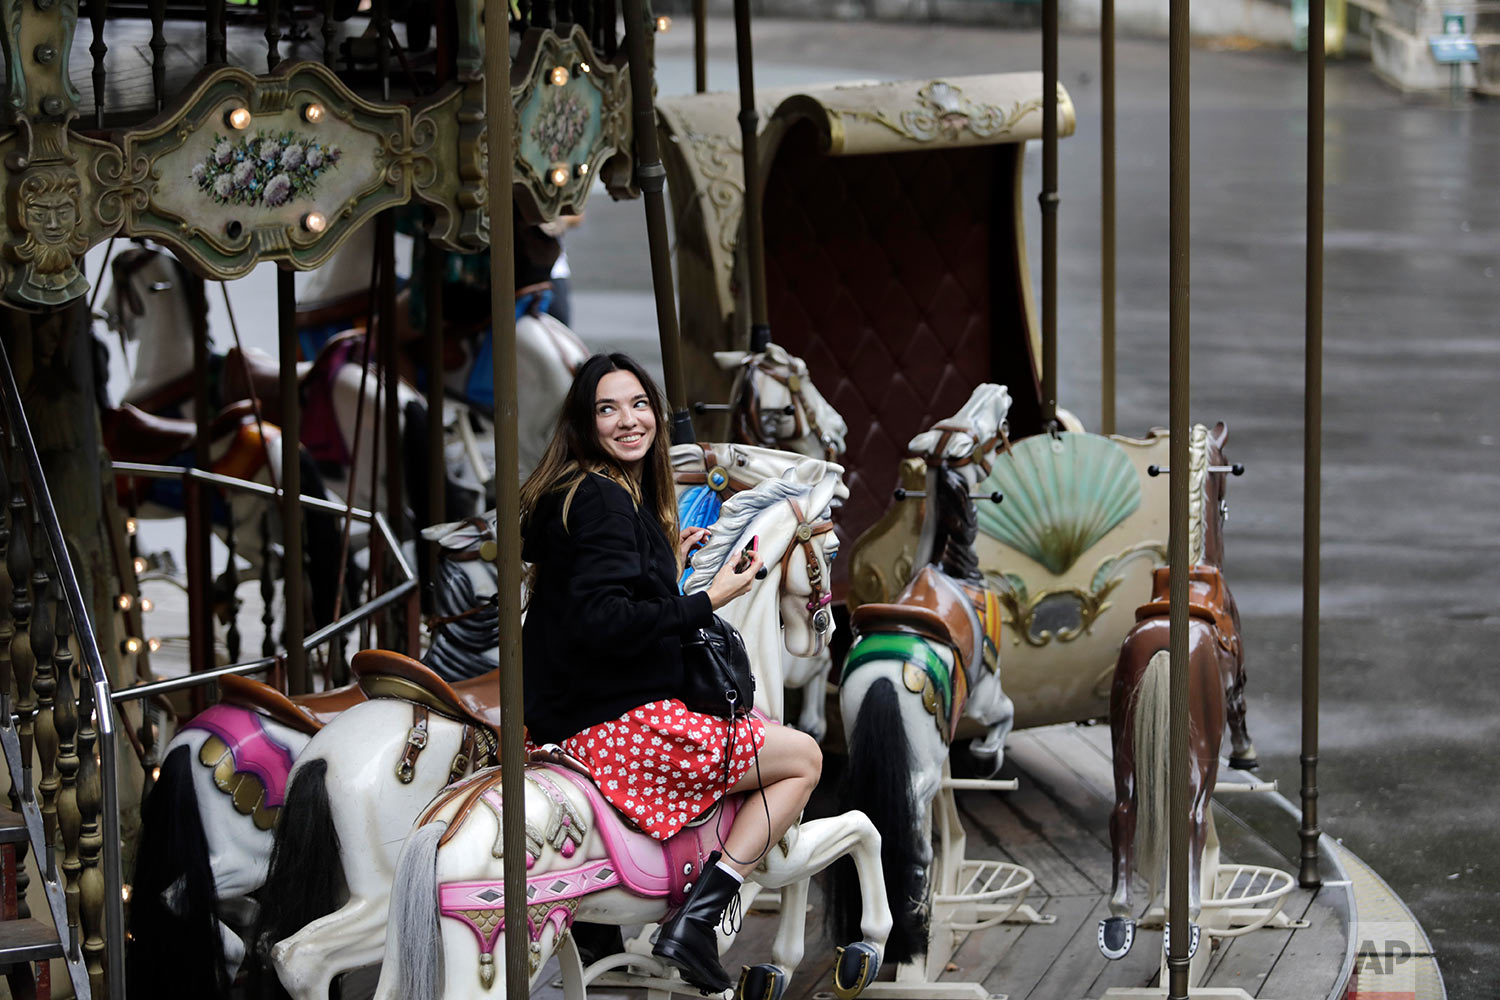 A woman smiles as she takes a ride on a carousel in the Montmartre district of Paris Friday, Aug. 9, 2019. (AP Photo/Lewis Joly)